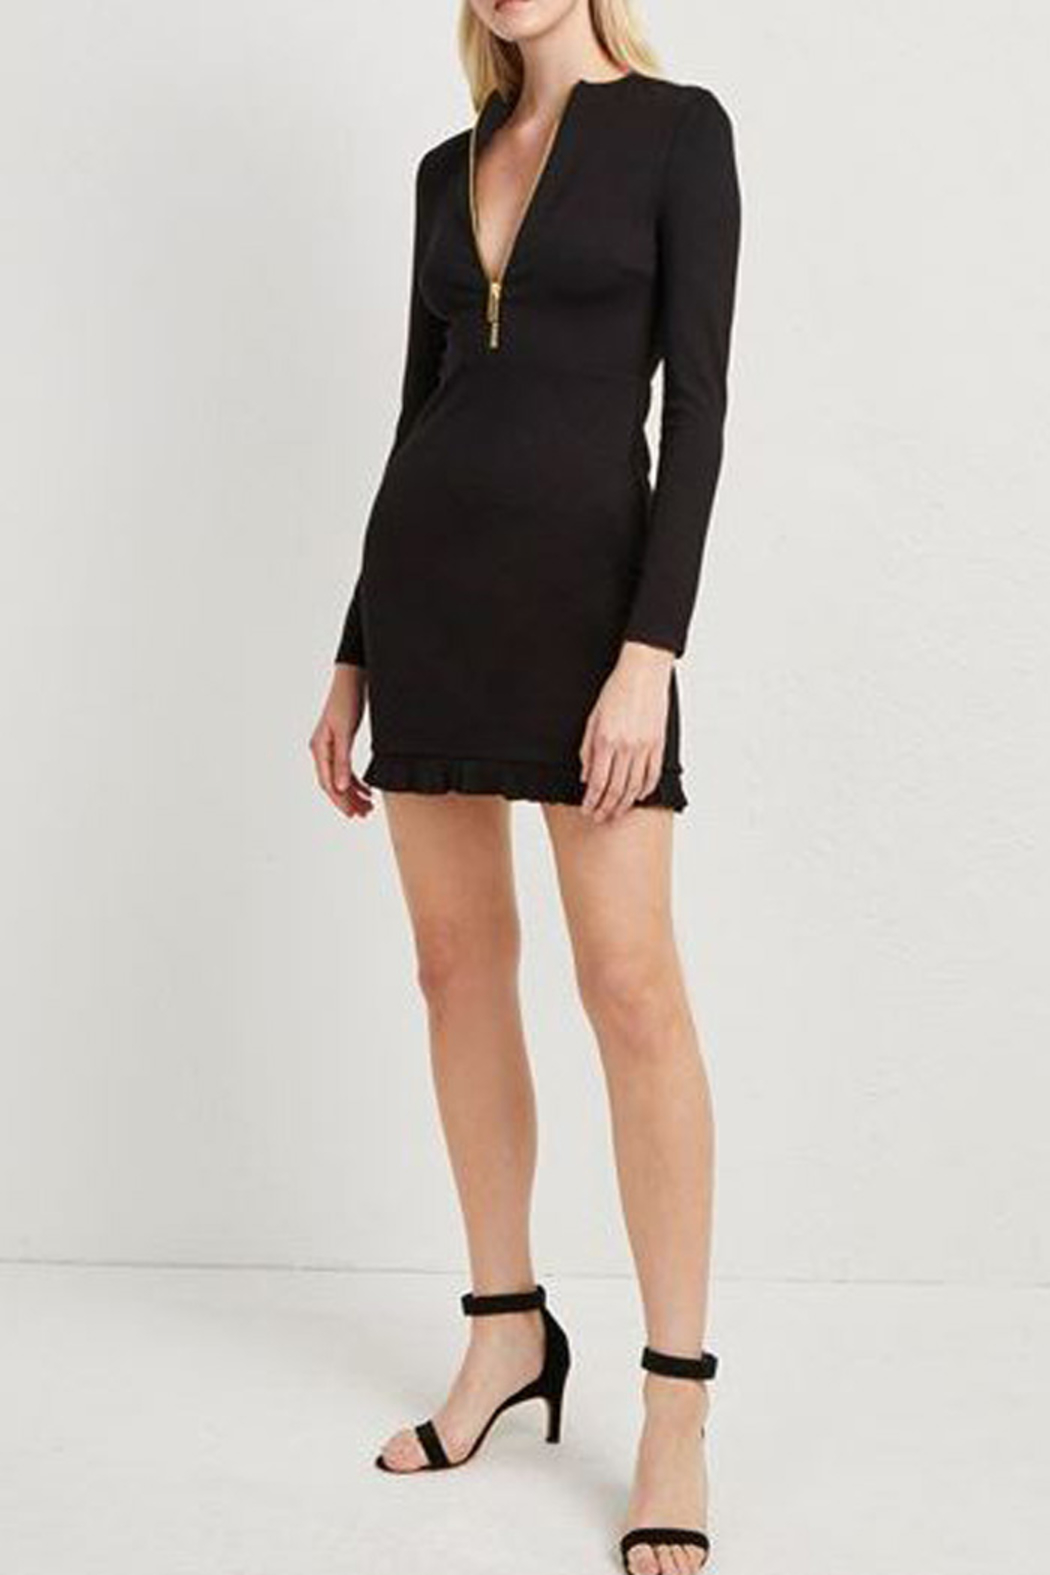 French Connection PONTE JERSEY LONG SLEEVE BLACK DRESS - Front Full Image